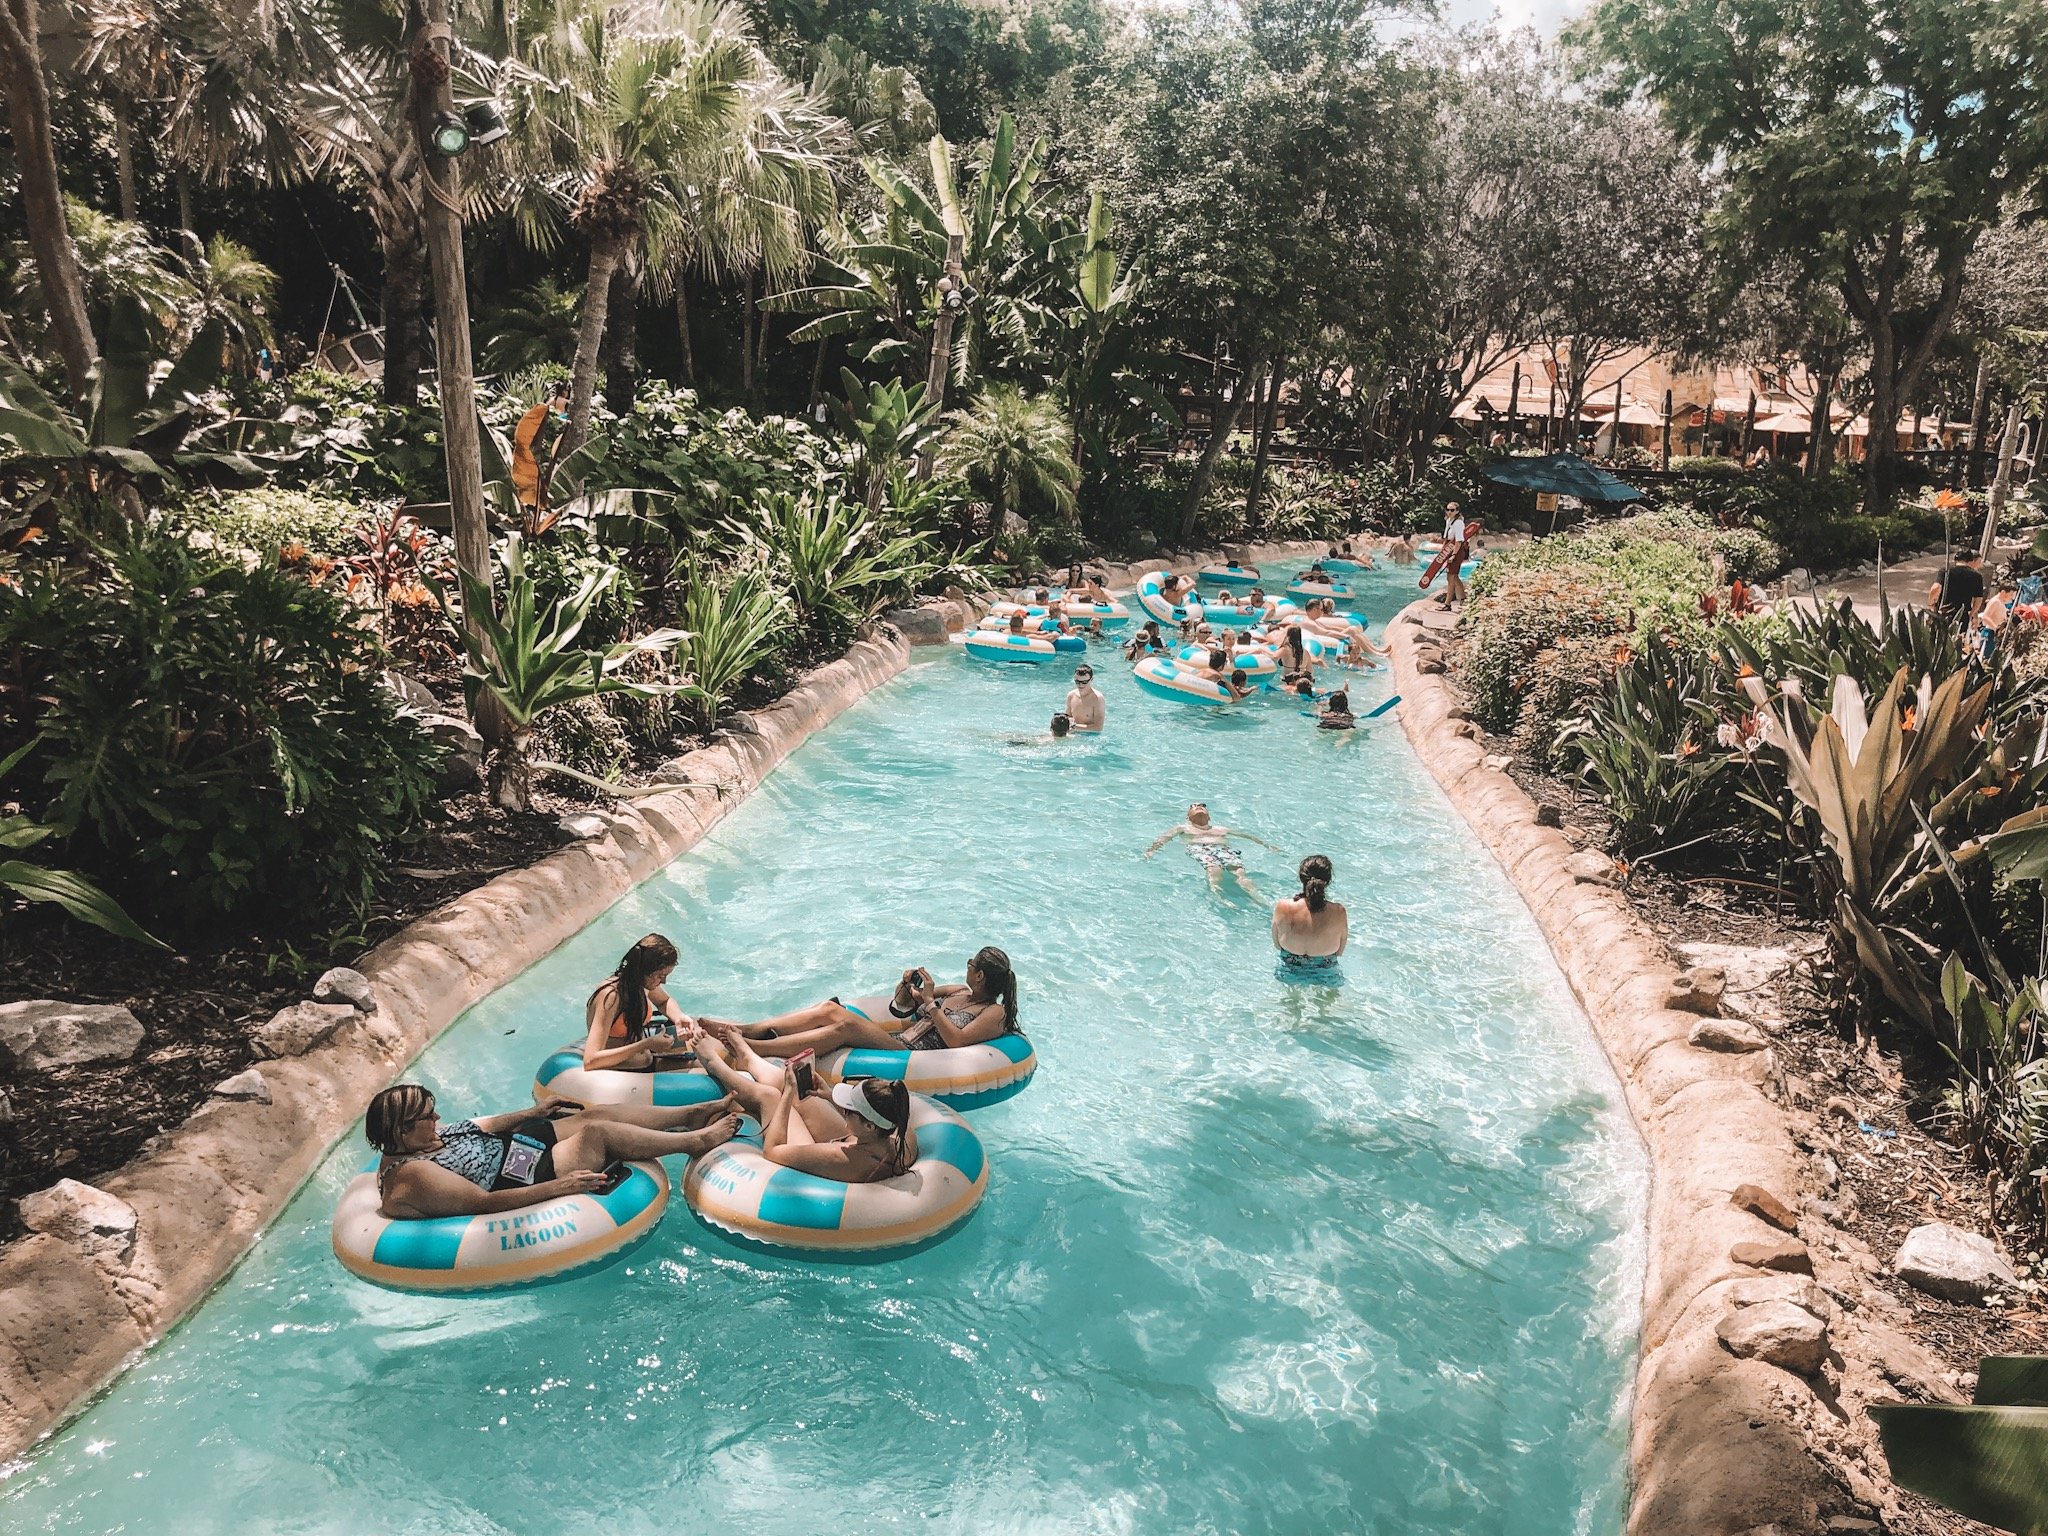 Disney's Typhoon Lagoon: Tips to Make the Most of it